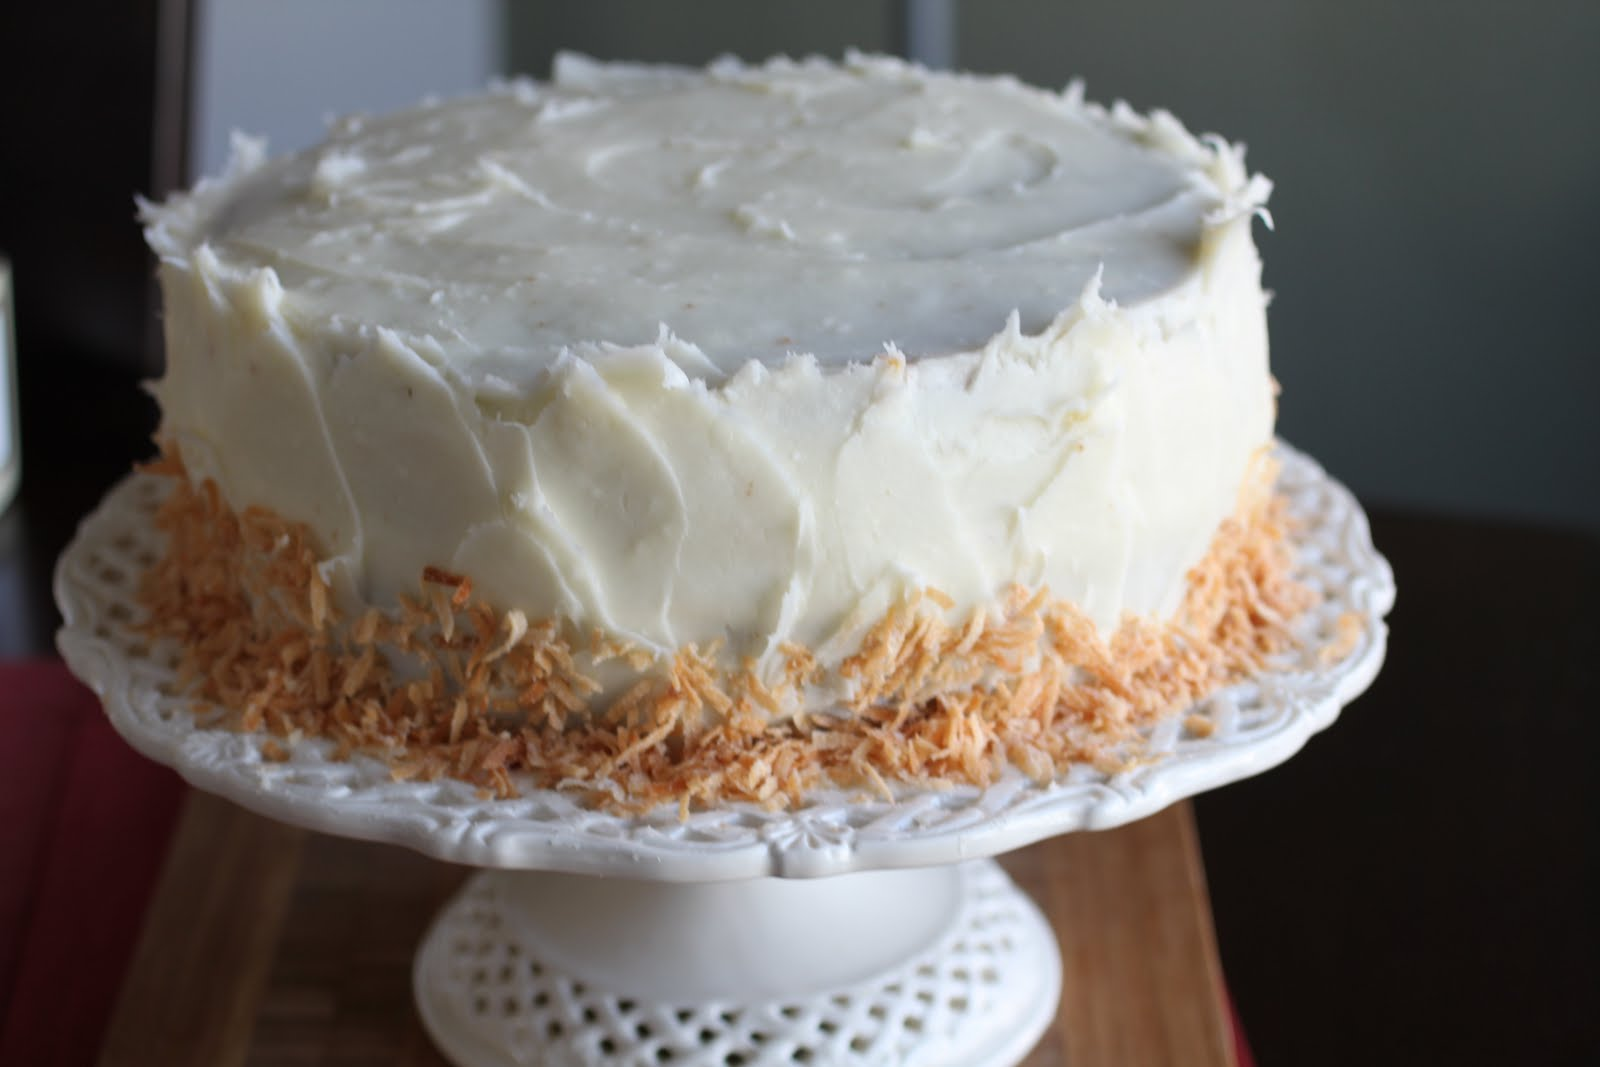 ... Food Blog: Coconut Pineapple Carrot Cake with Cream Cheese Frosting